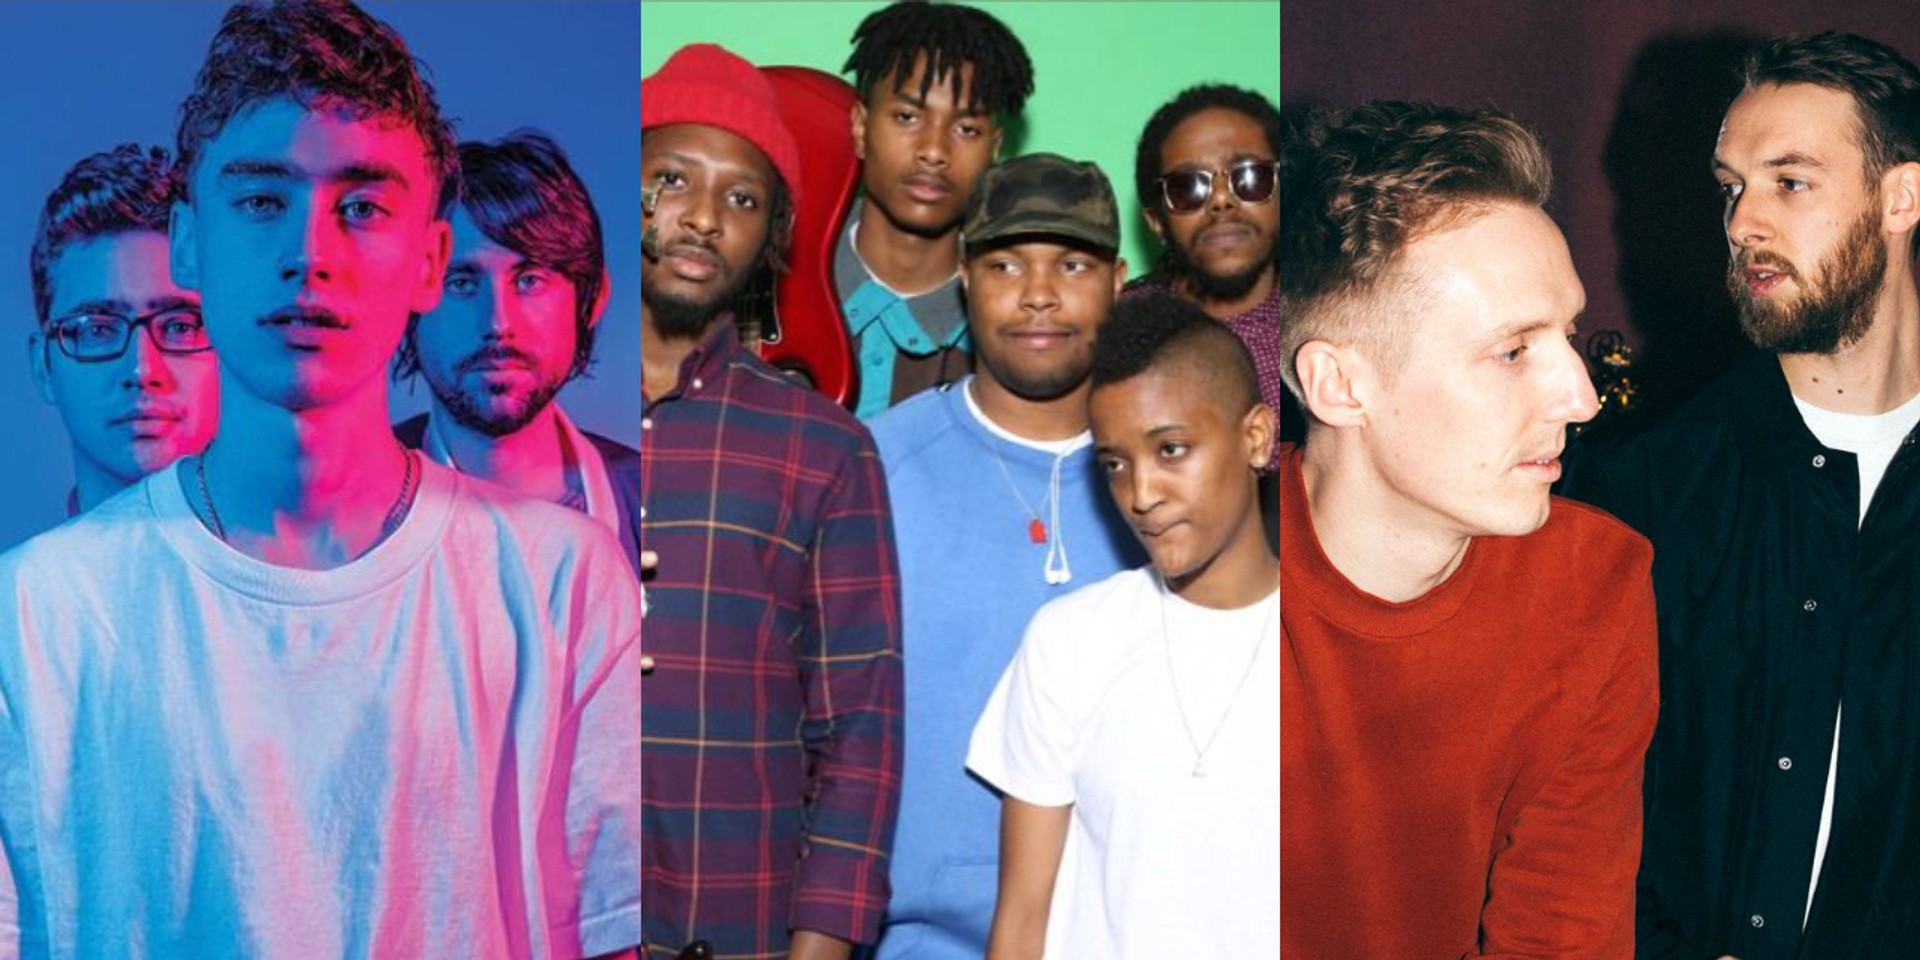 LaLaLa Festival 2019 announces line-up: Years & Years, The Internet, Honne and more